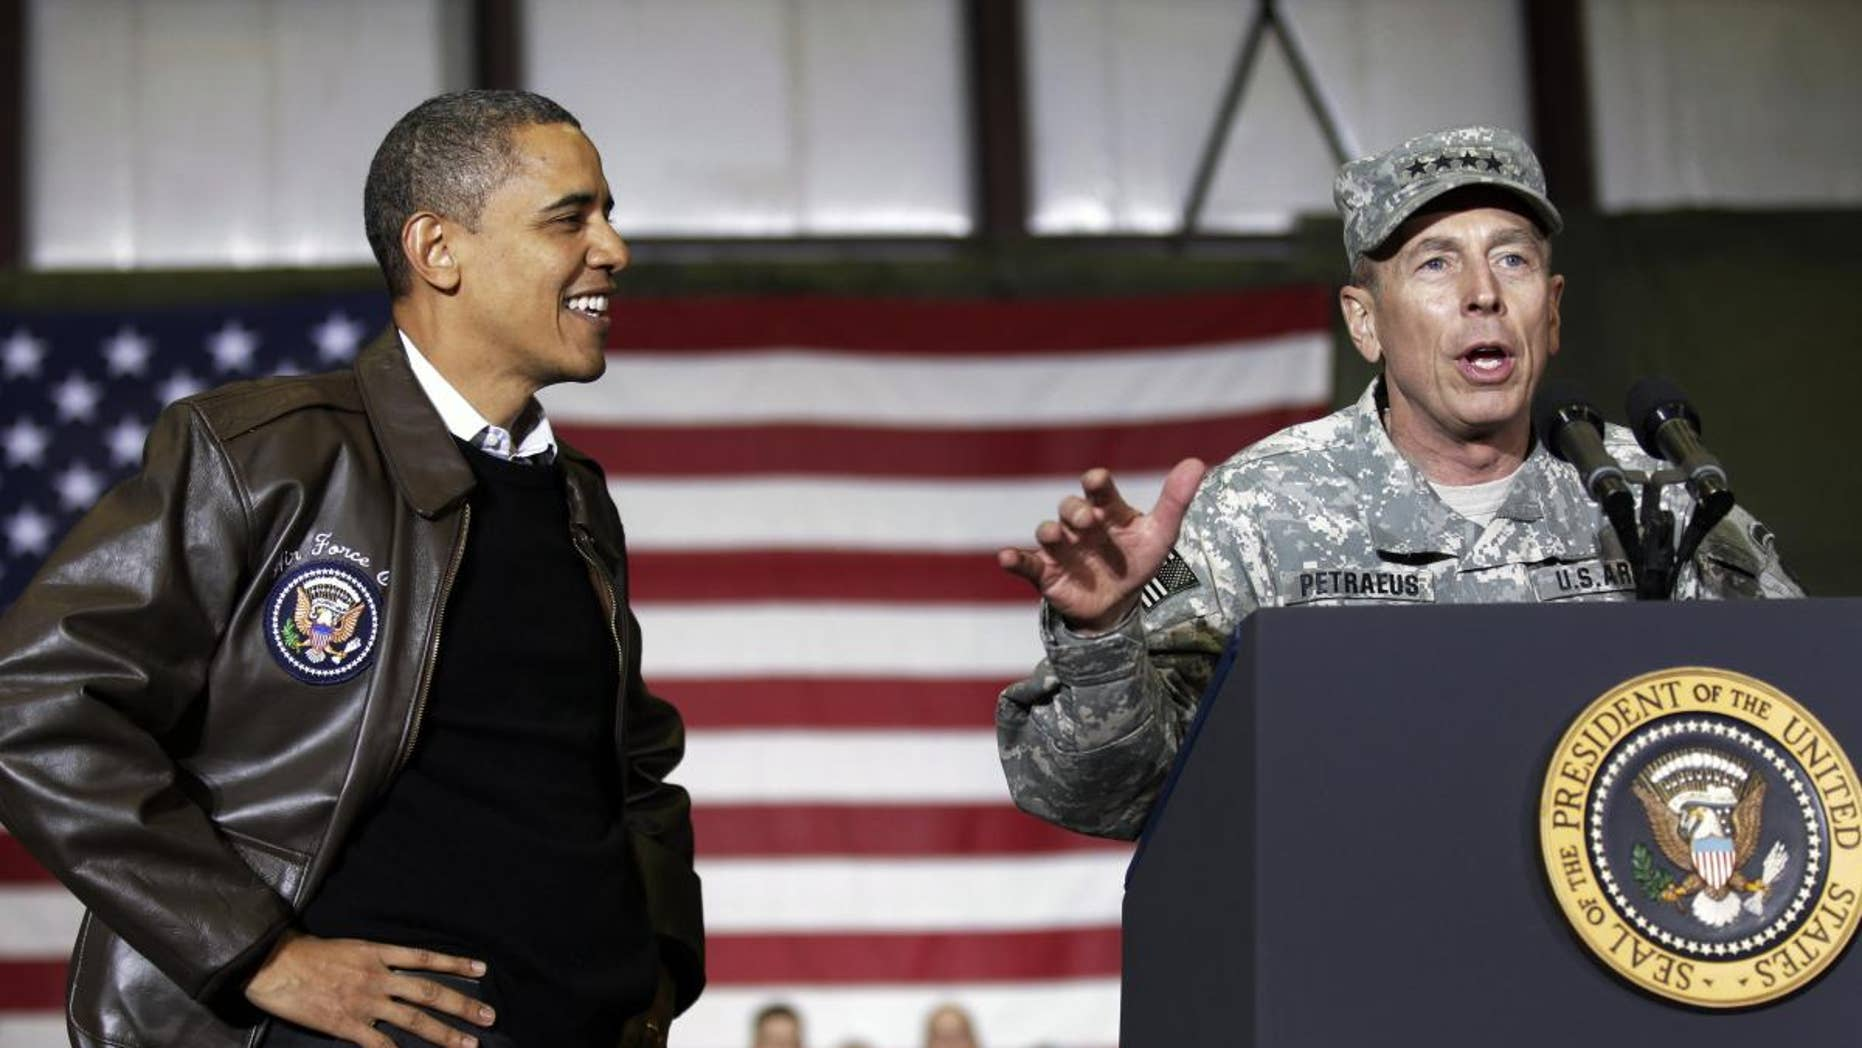 President Barack Obama, left, is introduced NATO Commander in Afghanistan U.S. Gen David Petraeus, right, to the troops during a rally in an unannounced visit at Bagram Air Field in Afghanistan, Friday, Dec. 3, 2010.(AP Photo/Pablo Martinez Monsivais)